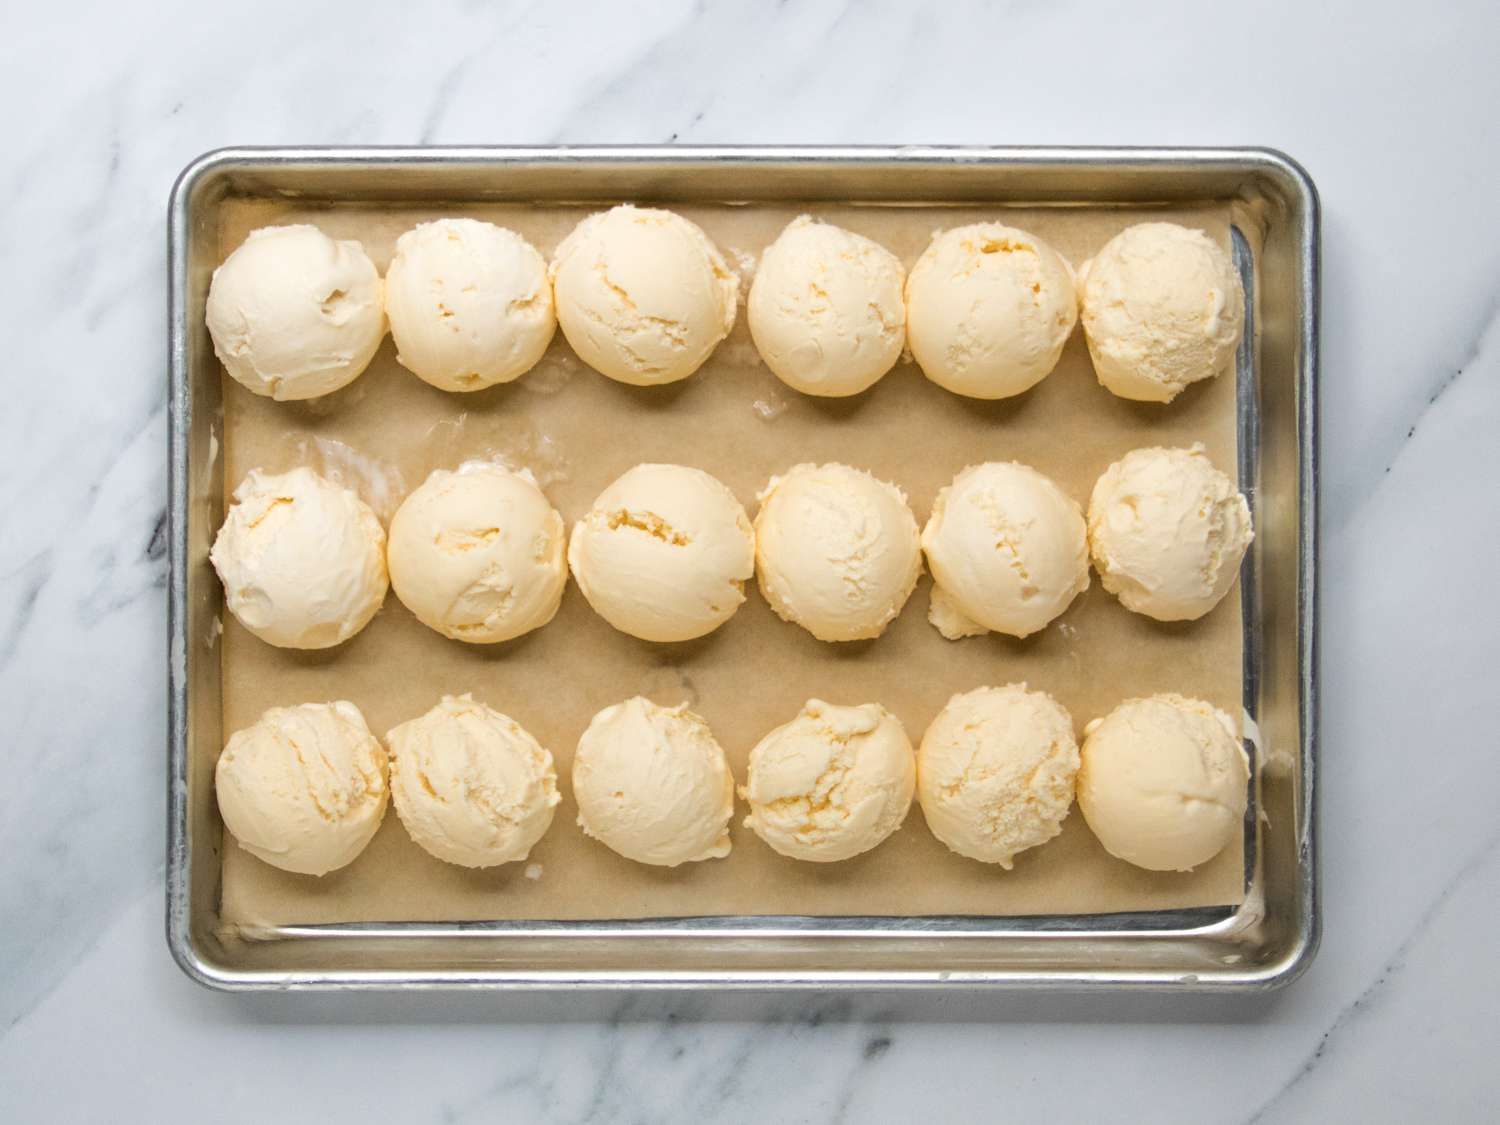 a baking sheet filled with ice cream scoops